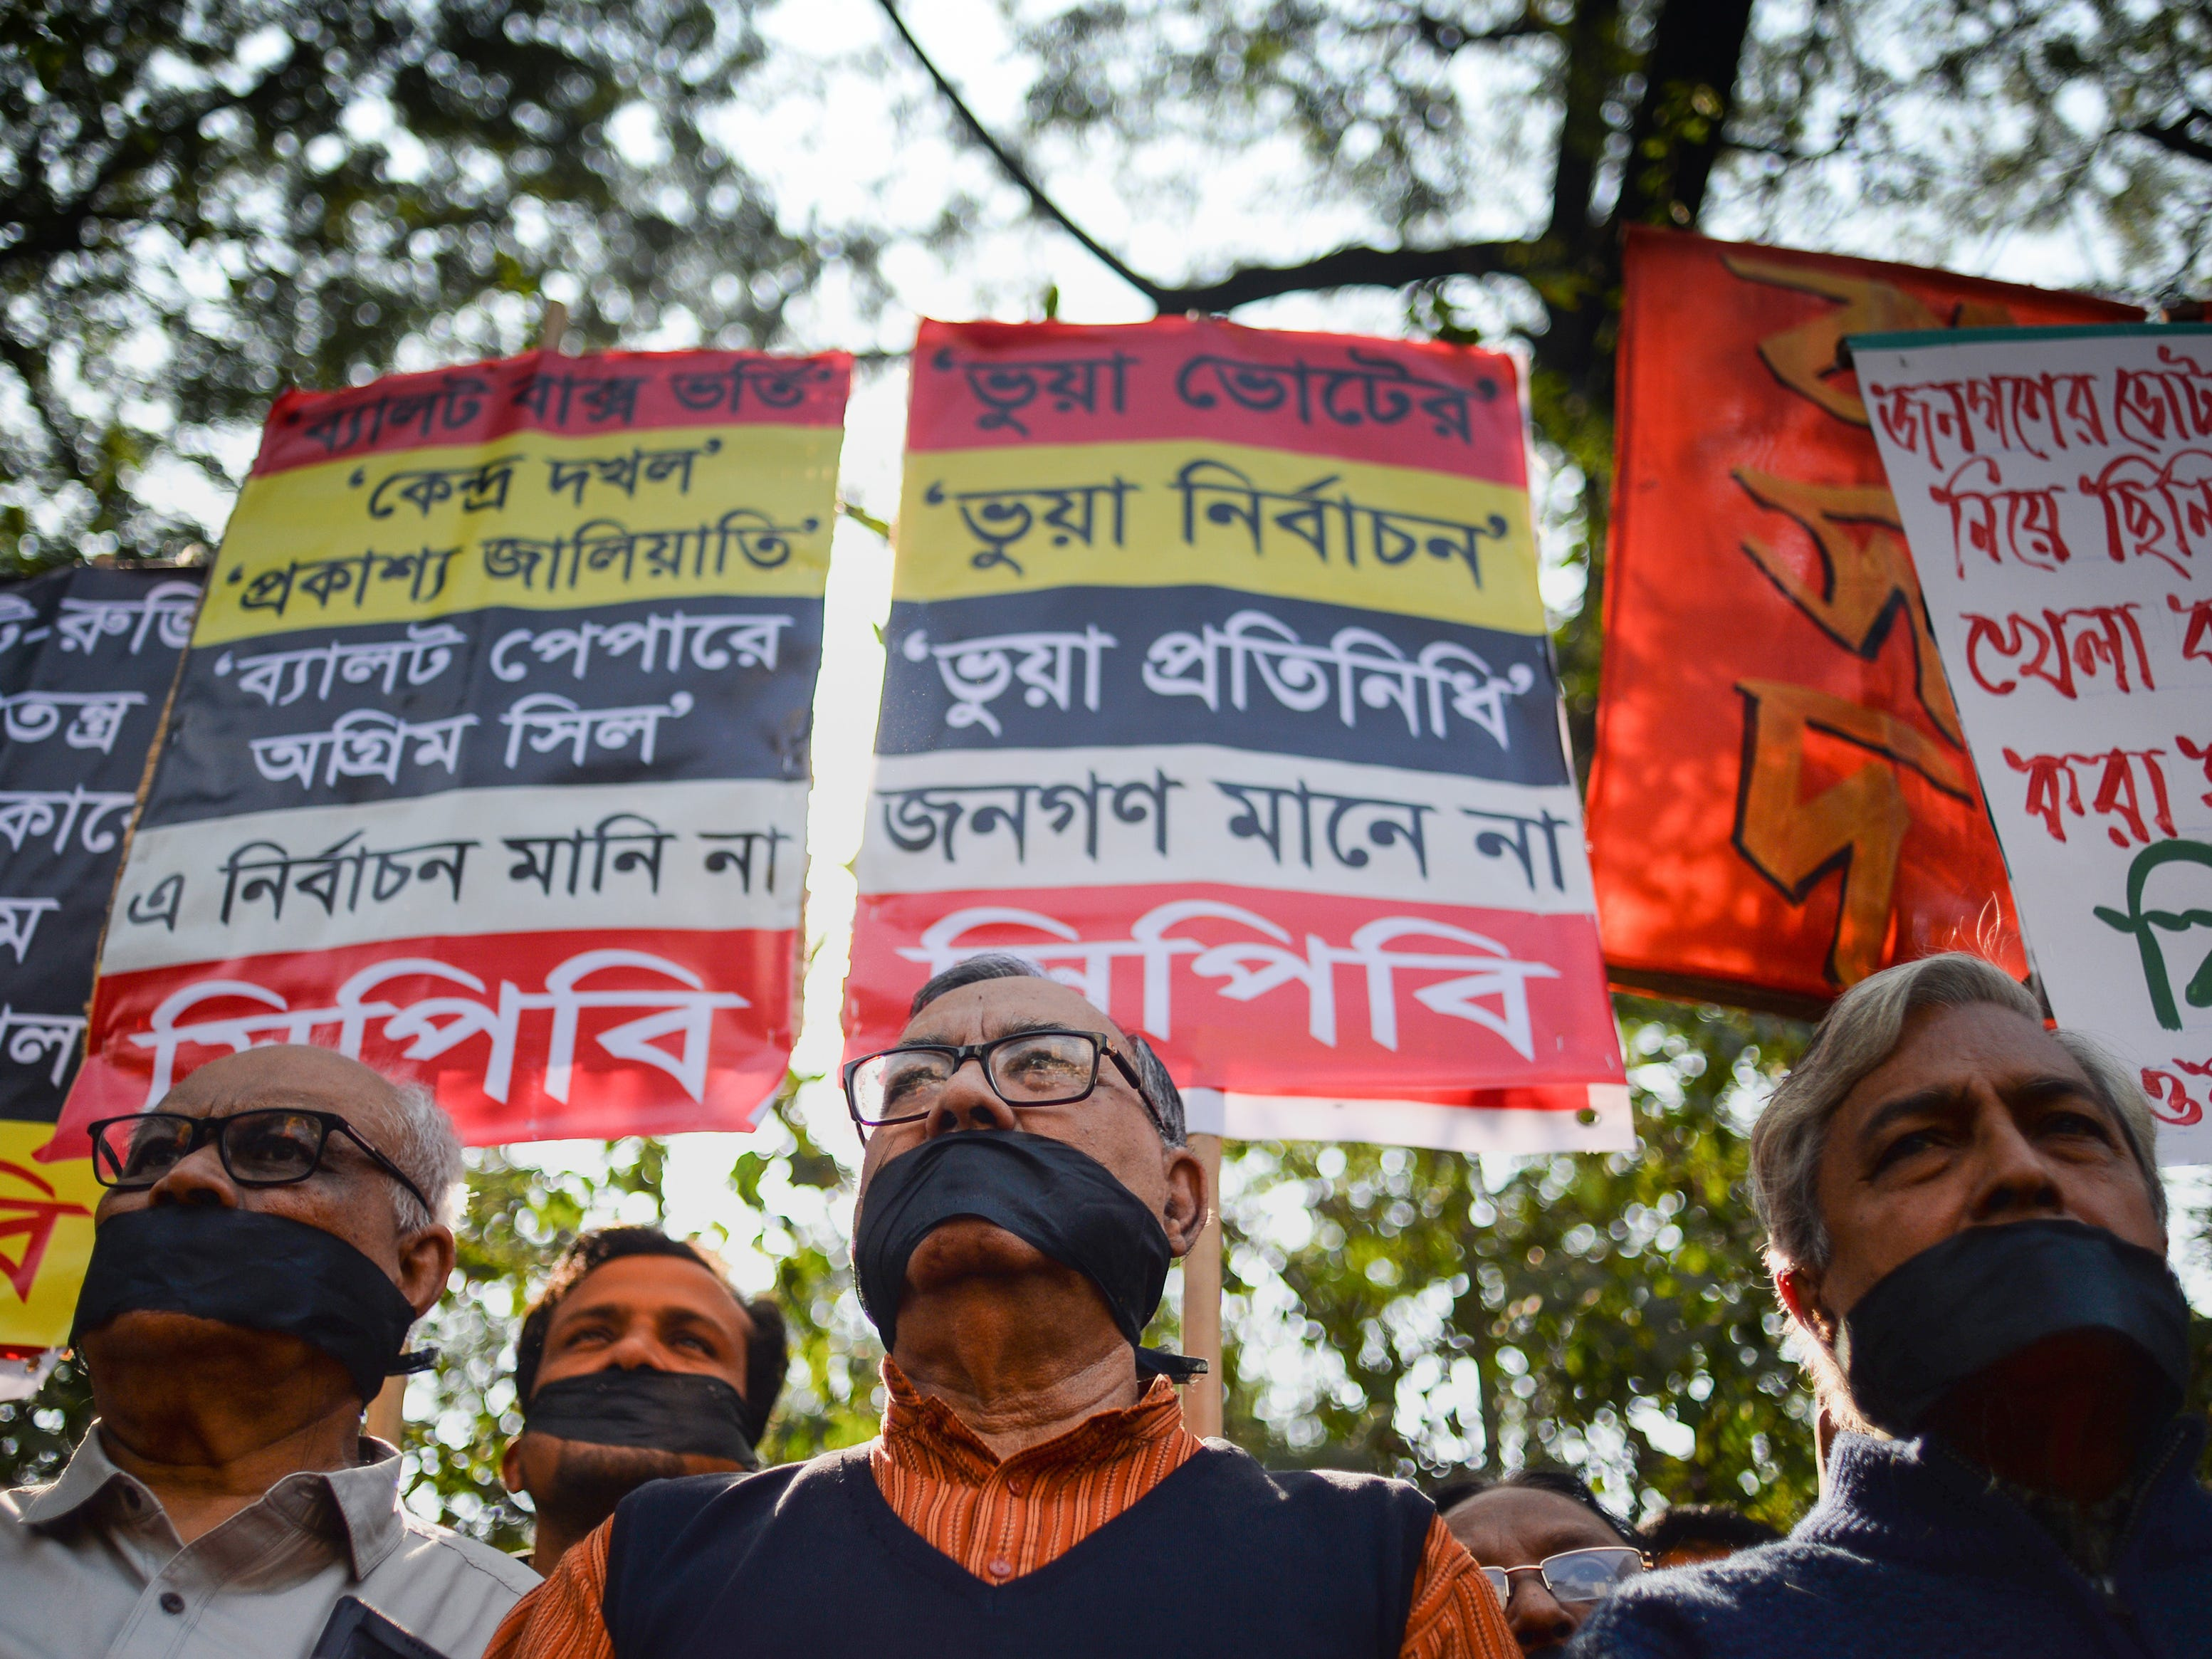 Left-wing activists organised by the Communist Party of Bangladesh wear black cloth over their mouths at a protest against the allegedly fraudulent victory of the ruling Awami League in the recent general election, in Dhaka on Jan. 3, 2019.